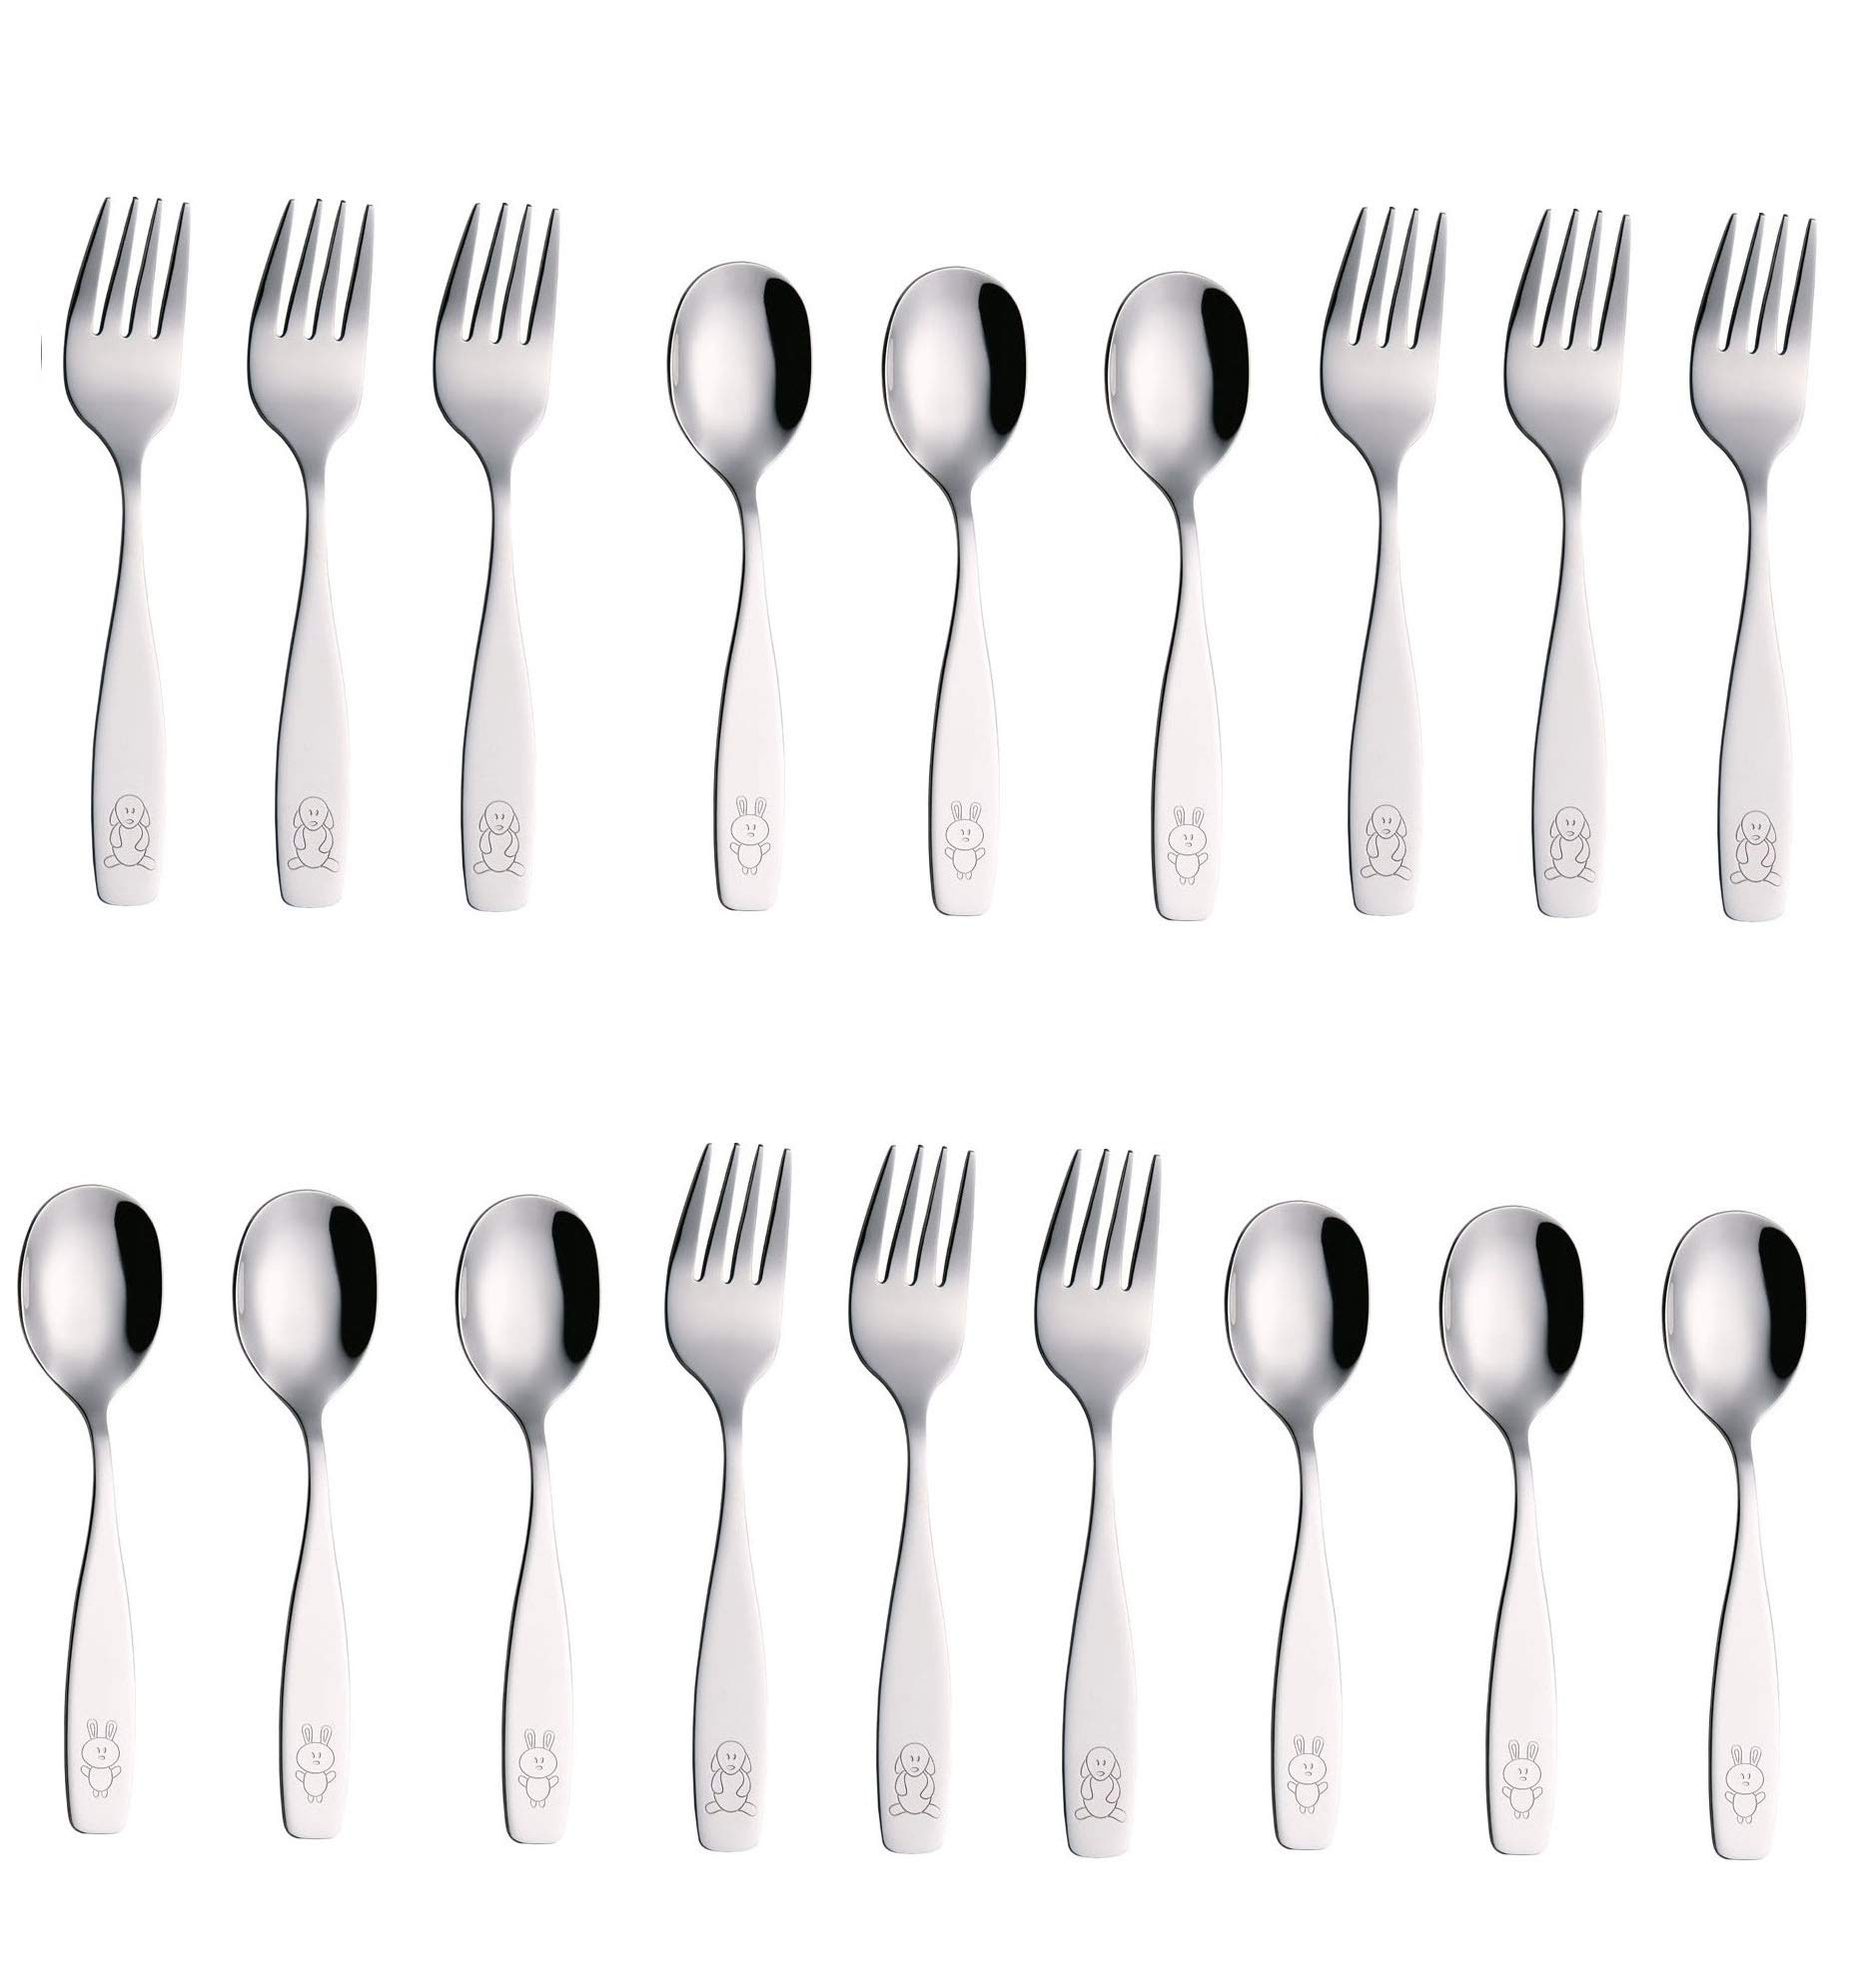 Exzact Stainless Steel 18 Pieces Childrens Flatware/Kids Silverware/Cutlery Set - 9 x Children Forks, 9 x Children Dinner Spoons - Safe Toddler Utensils (Engraved Dog Cat Bunny)(WF850-S18FS) by Exzact